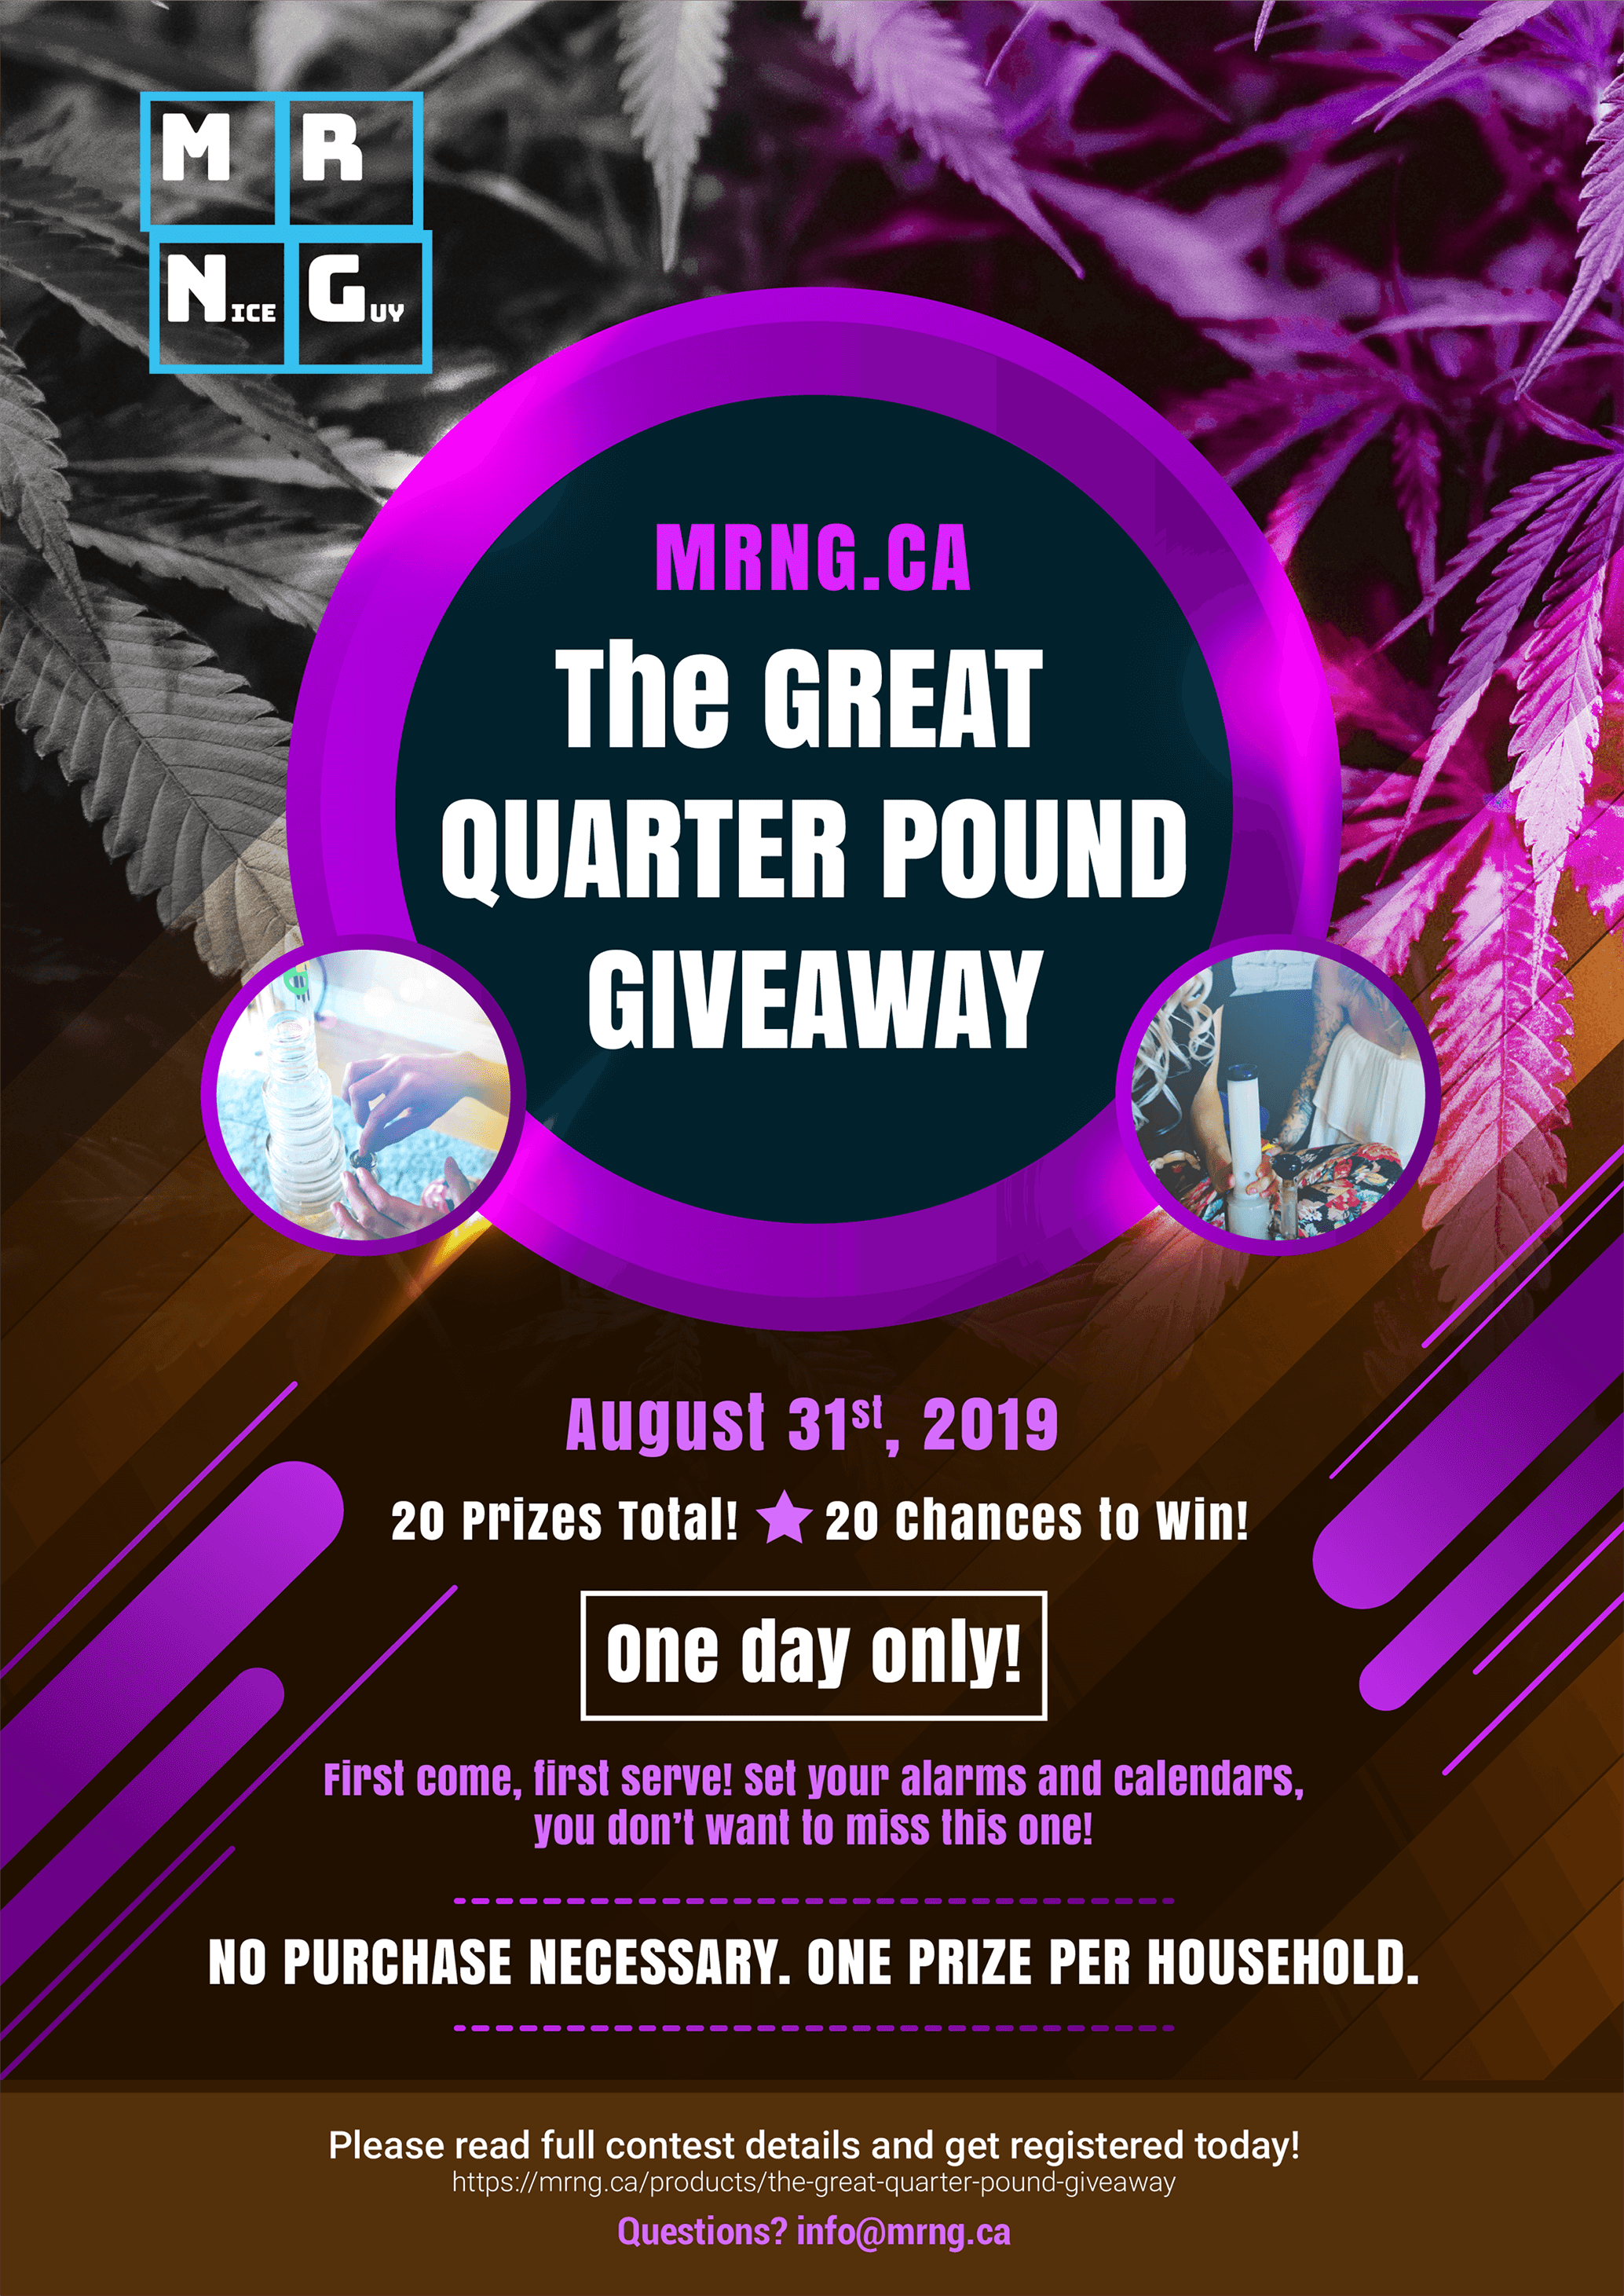 The GREAT QUARTER POUND GIVEAWAY